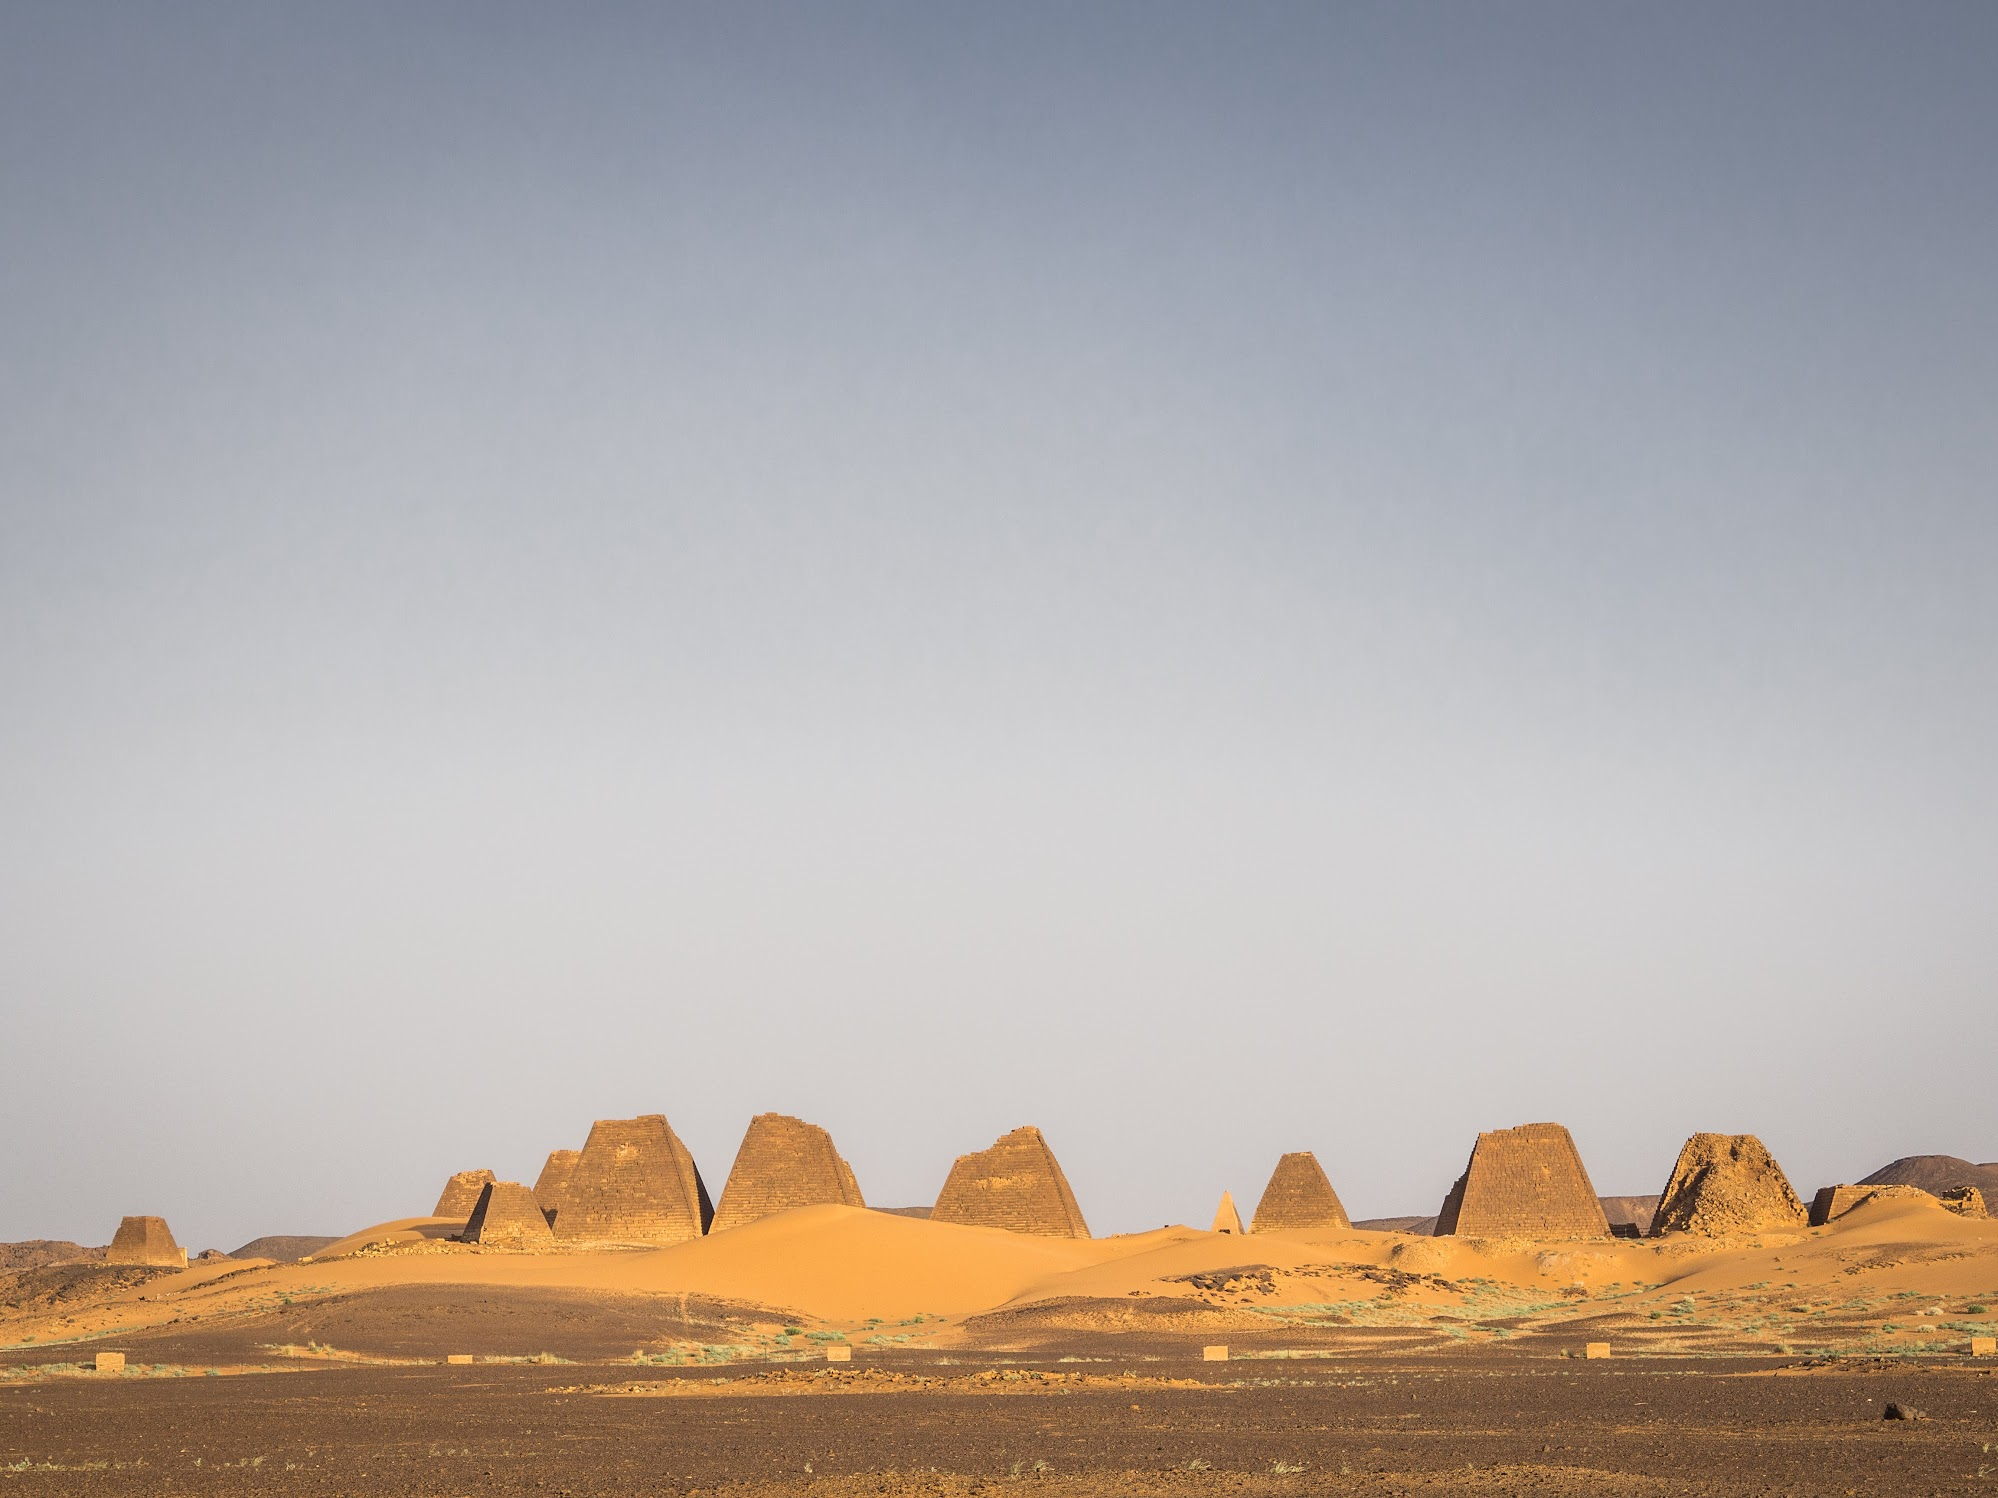 Meroe pyramids at sunset